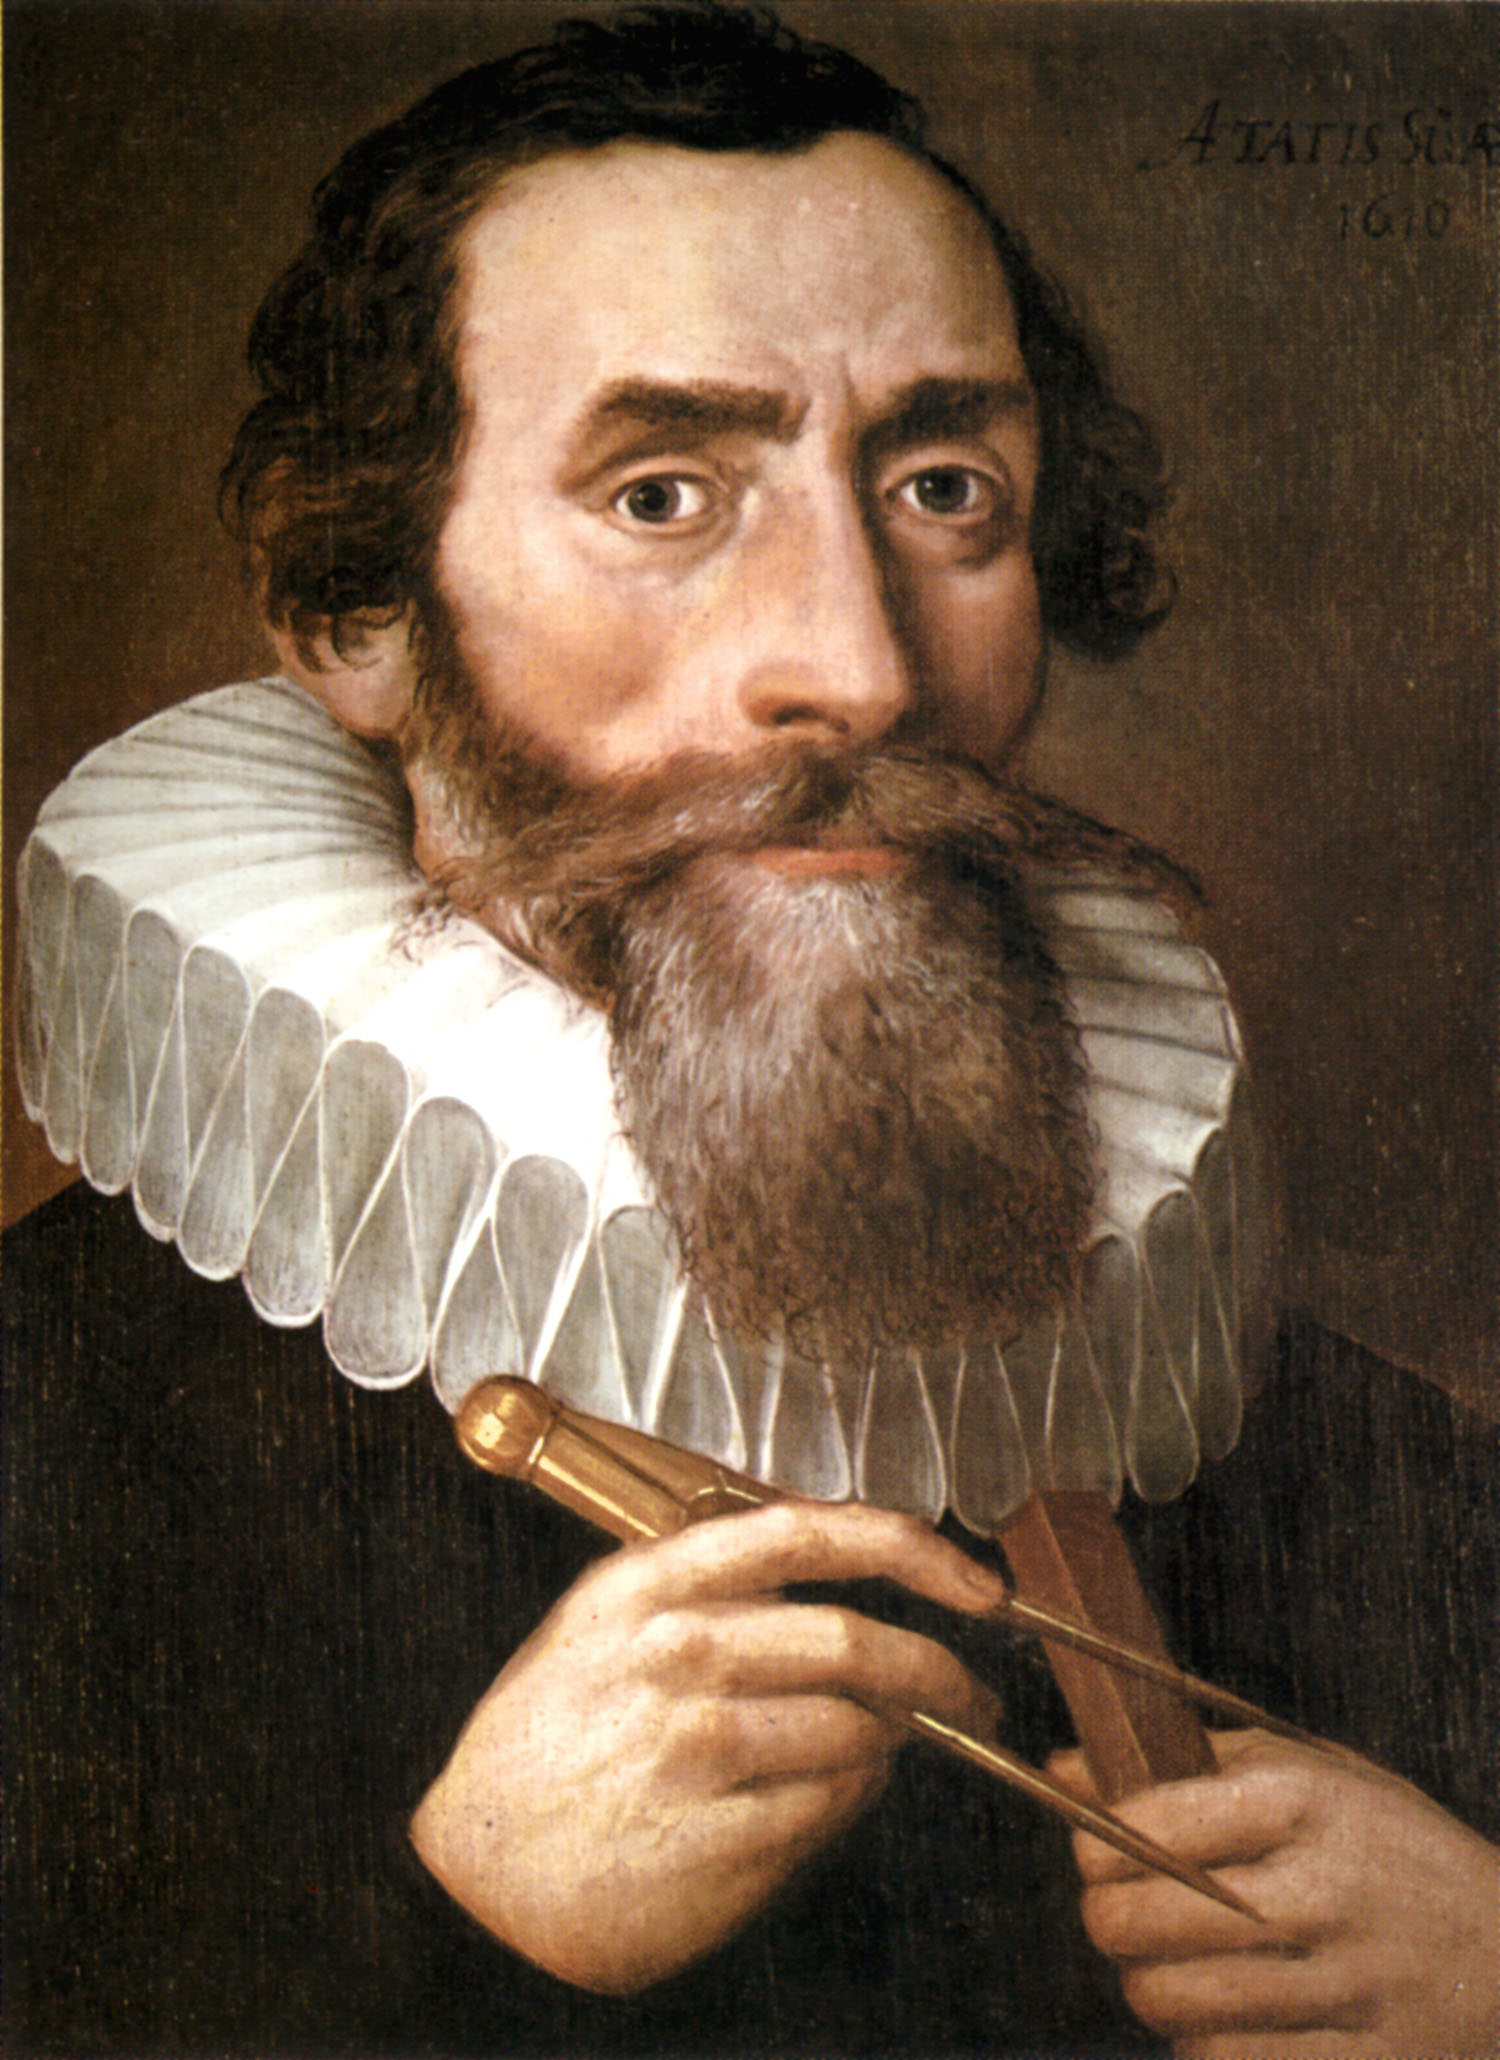 Portrait of Johannes Kepler by an unknown artist. Copy of a lost original from 1610 in the Benedictine monastery in Kremsmünster.